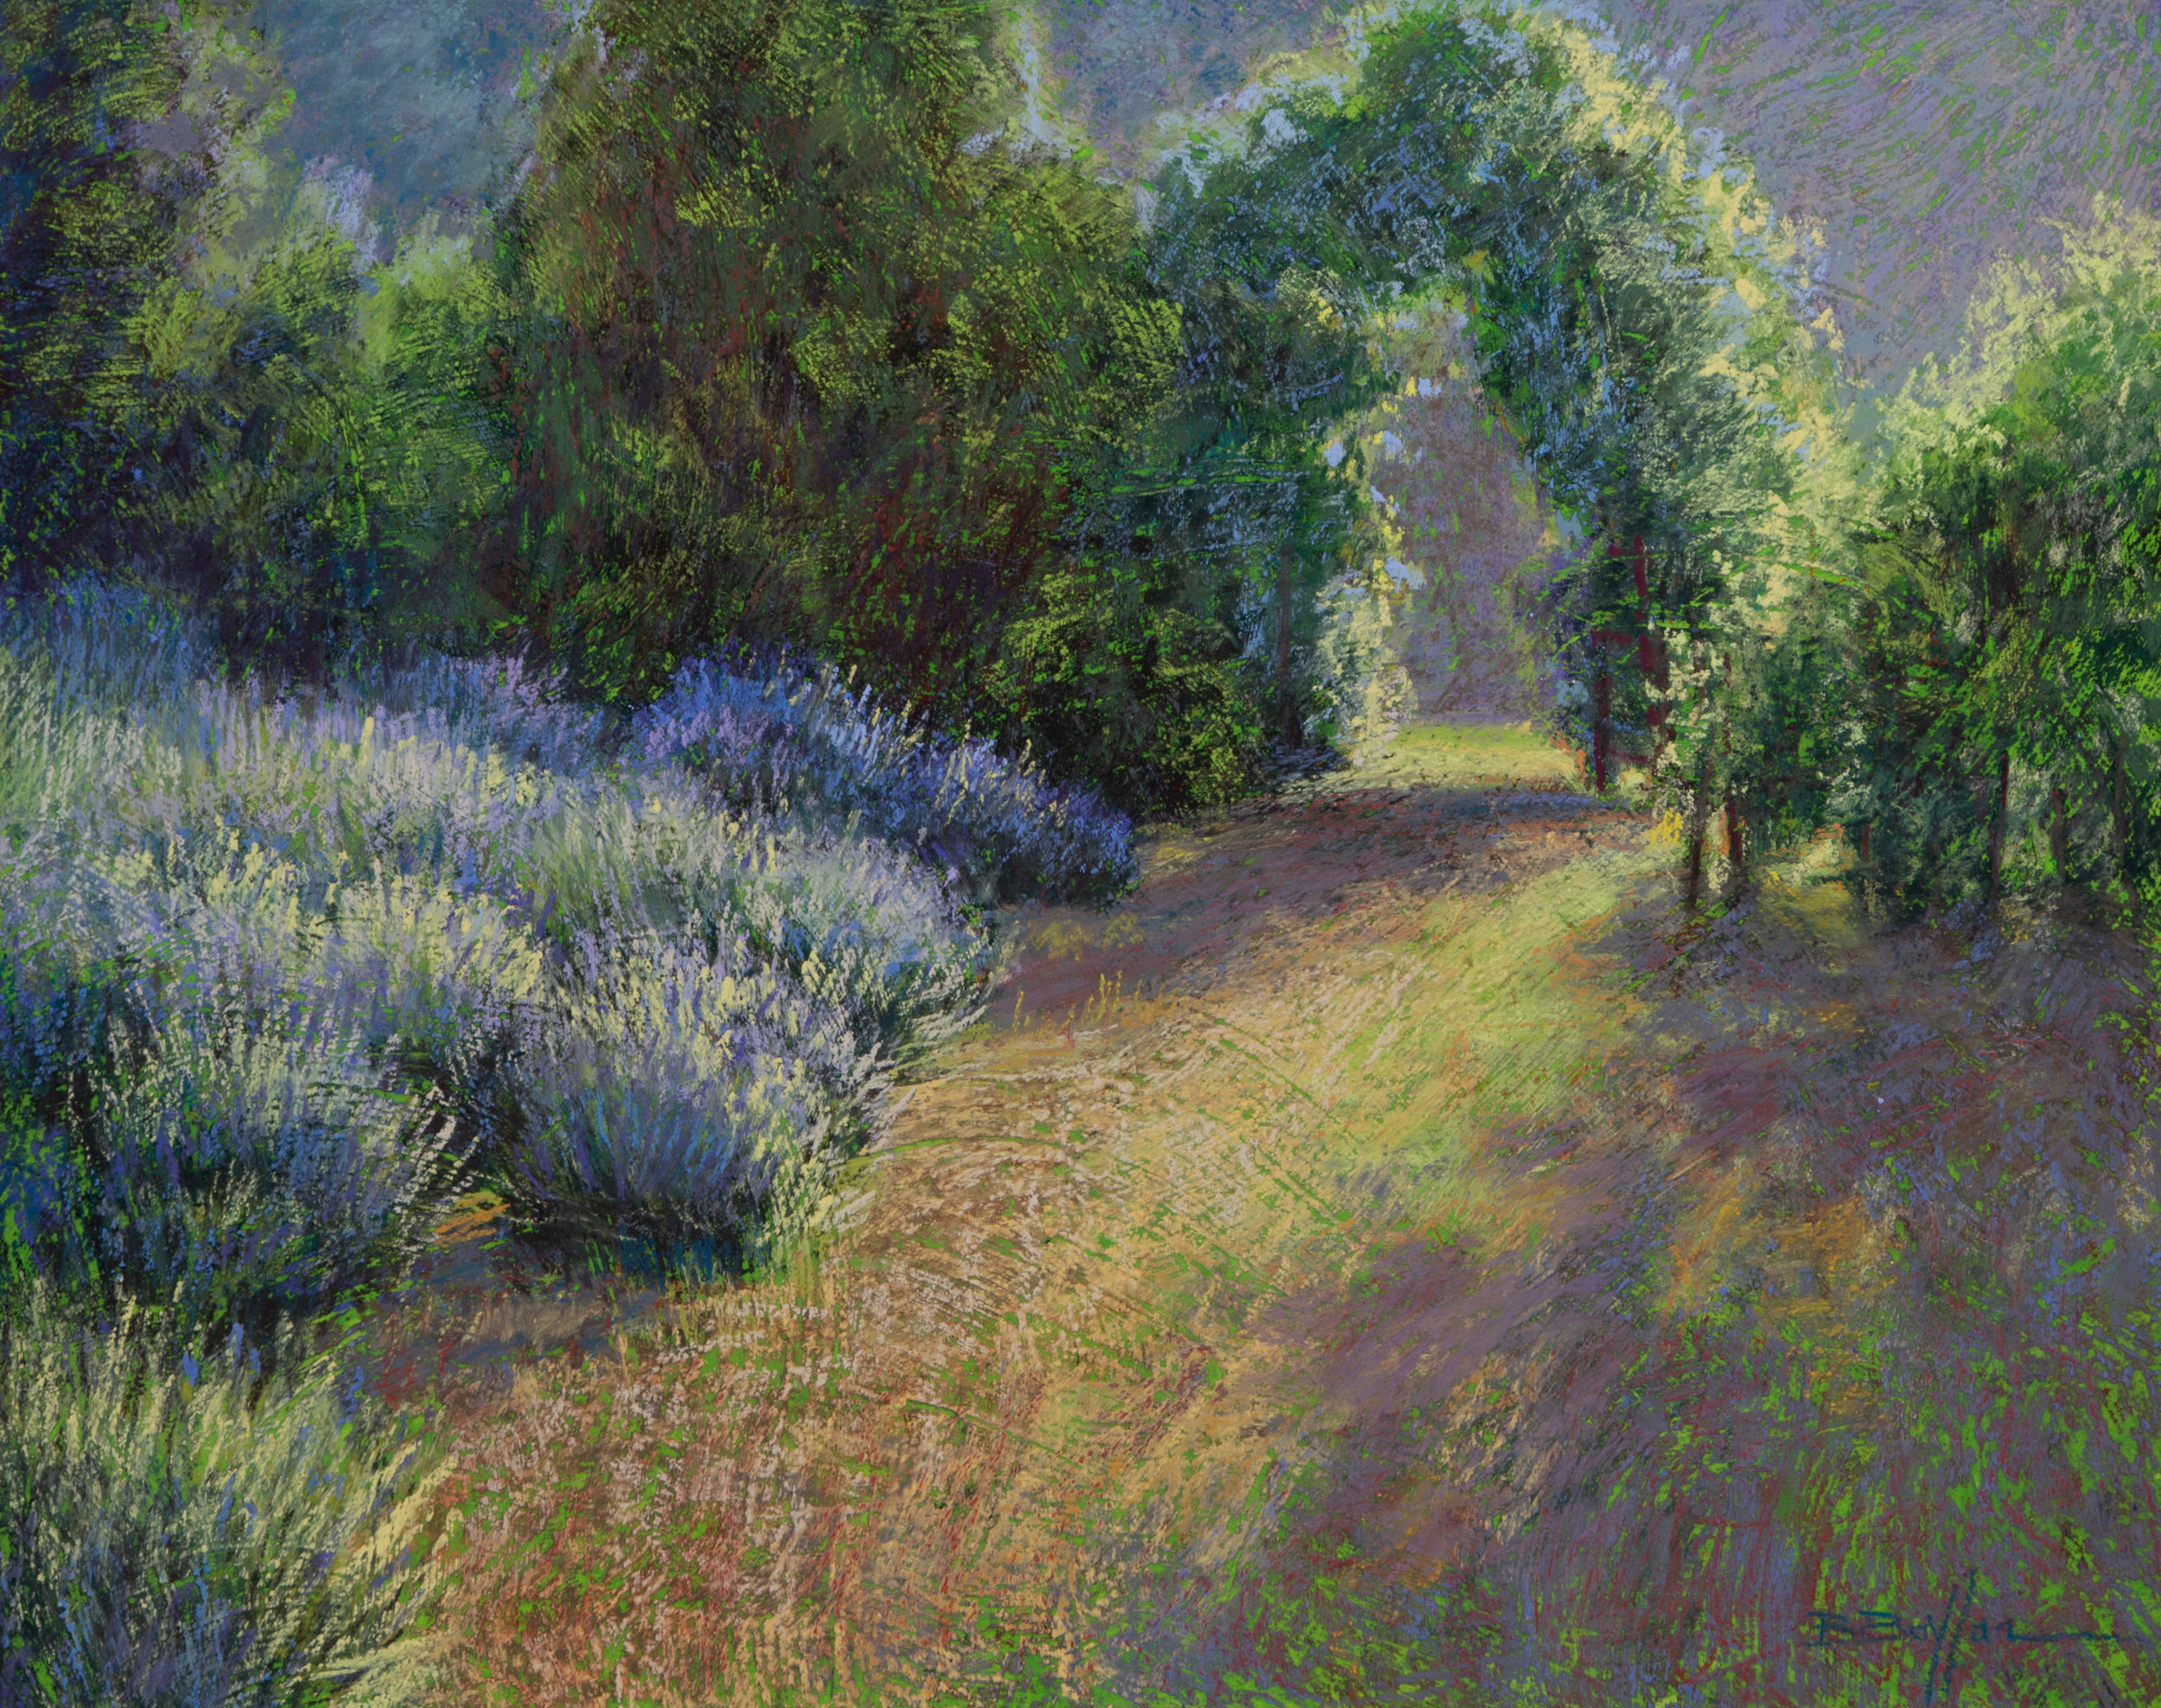 After the Lavender